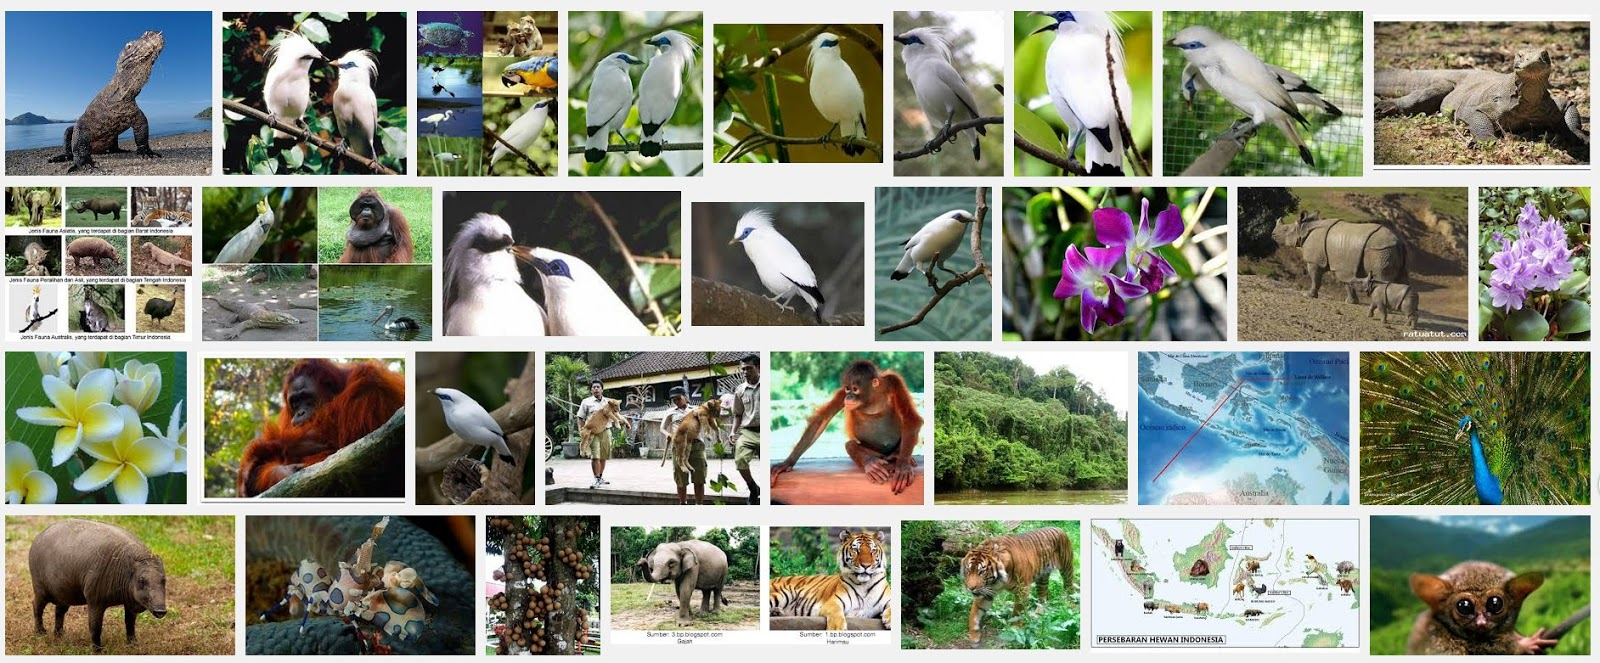 CAKRA GUIDE BALI- LOMBOK - Introduction to bali FAUNA